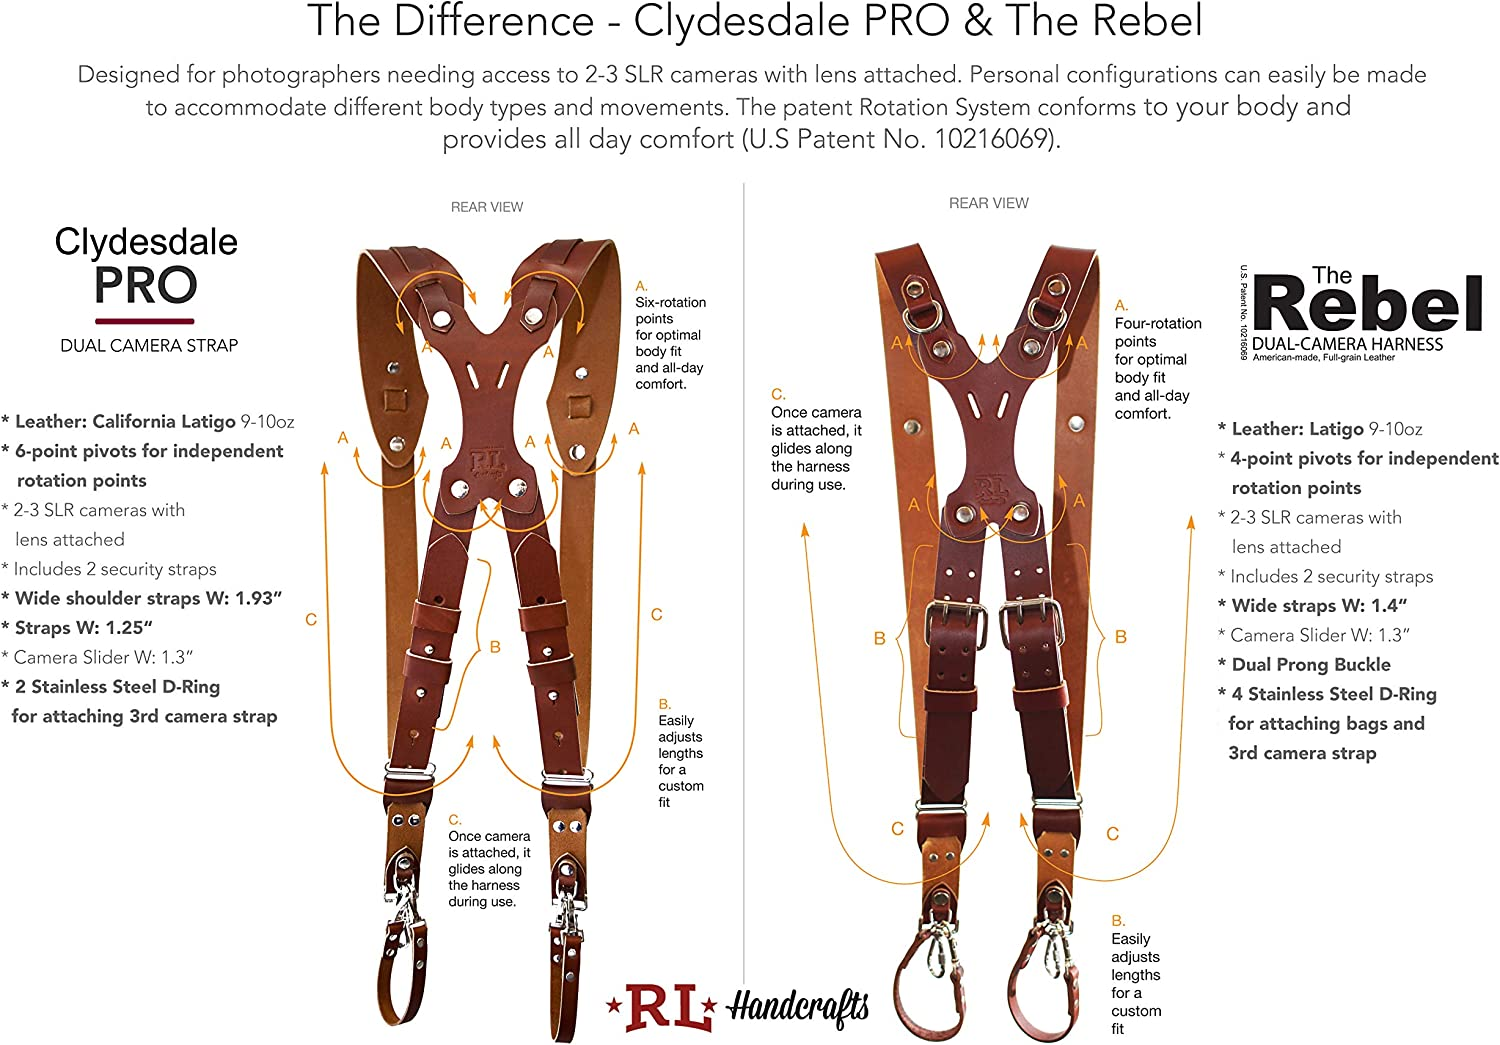 Mirrorless Rebel Dual Handmade Leather Camera Harness DLSR Sling /& Strap RL Handcrafts Point /& Shoot Made in The USA Medium, Burgundy